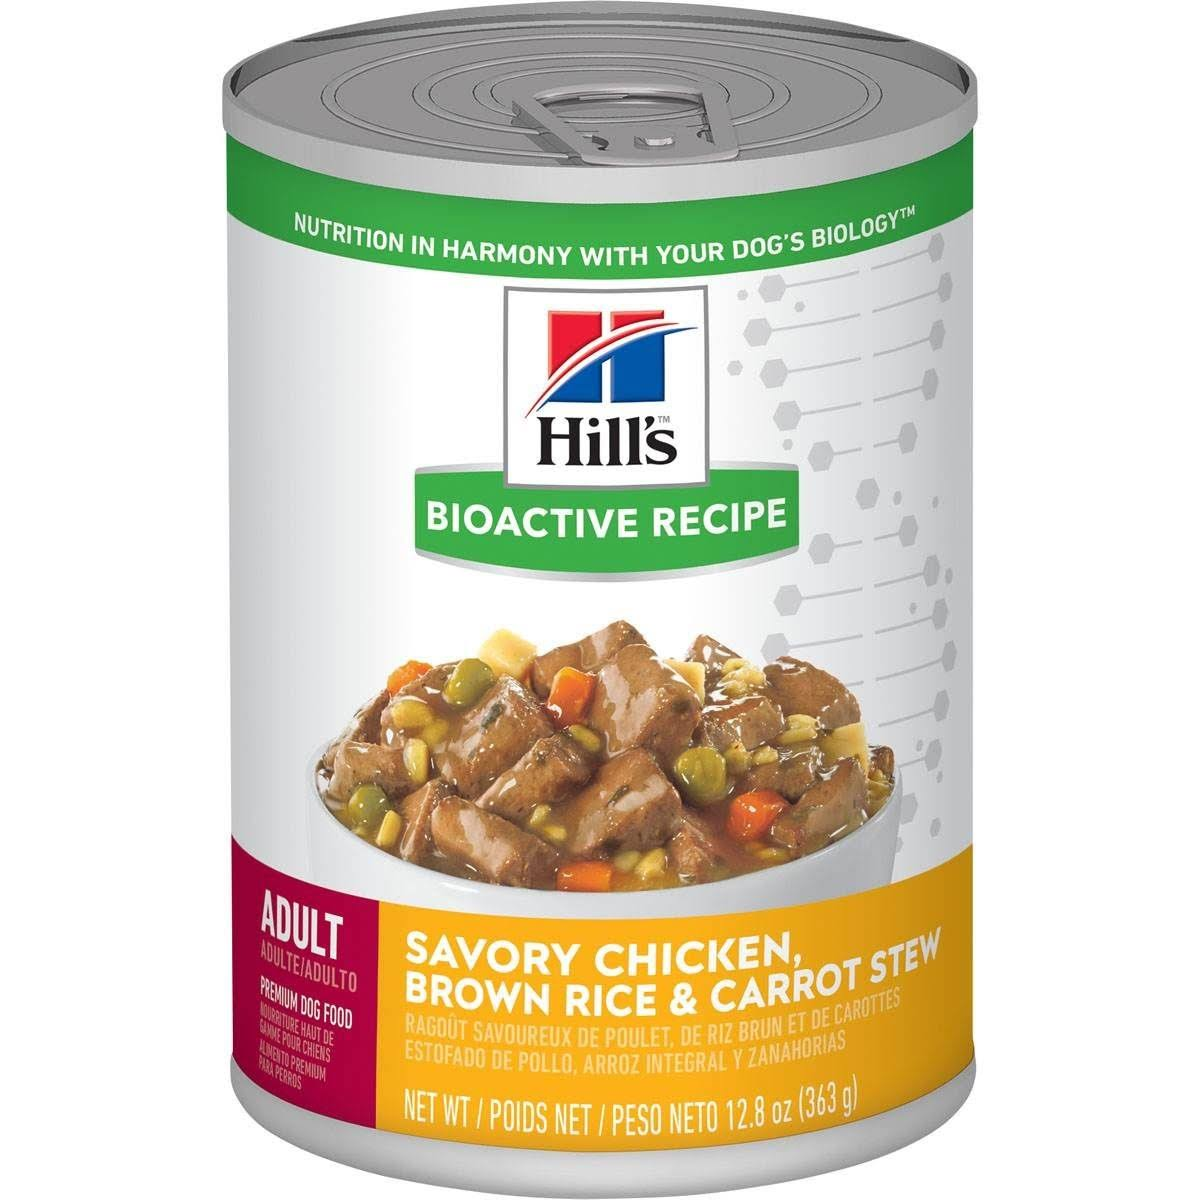 Hill's Bioactive Recipe Adult Dog Food - Savory Chicken, Brown Rice & Carrot Stew 363g